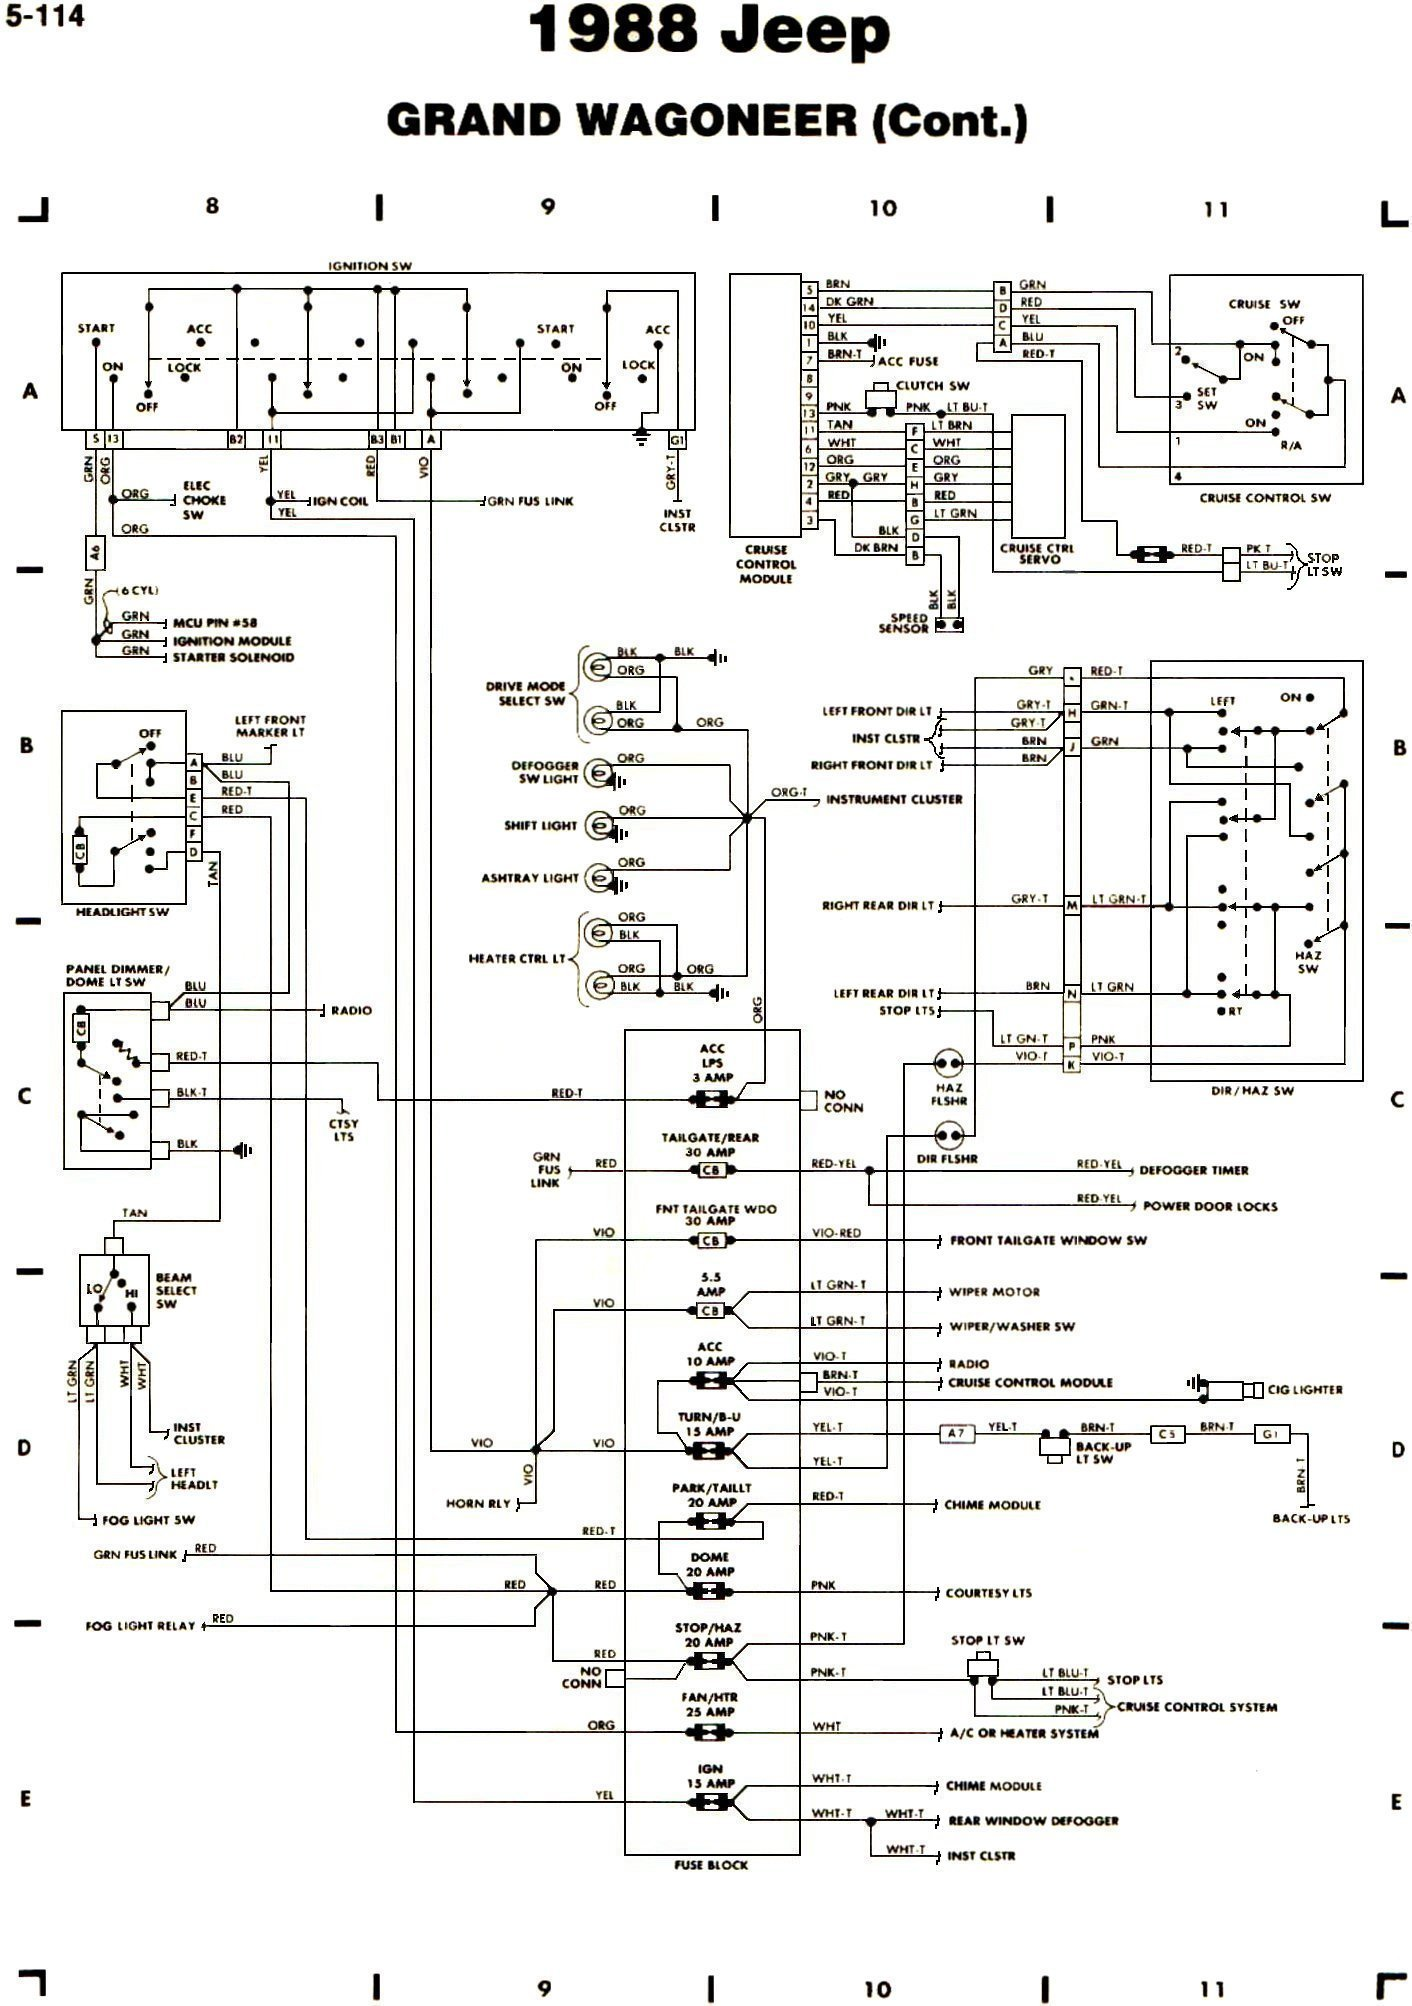 freightliner wiring fuse box diagram jRoIVIr 2007 freightliner fuse box diagram freightliner wiring diagram 2007 freightliner fuse box at mifinder.co